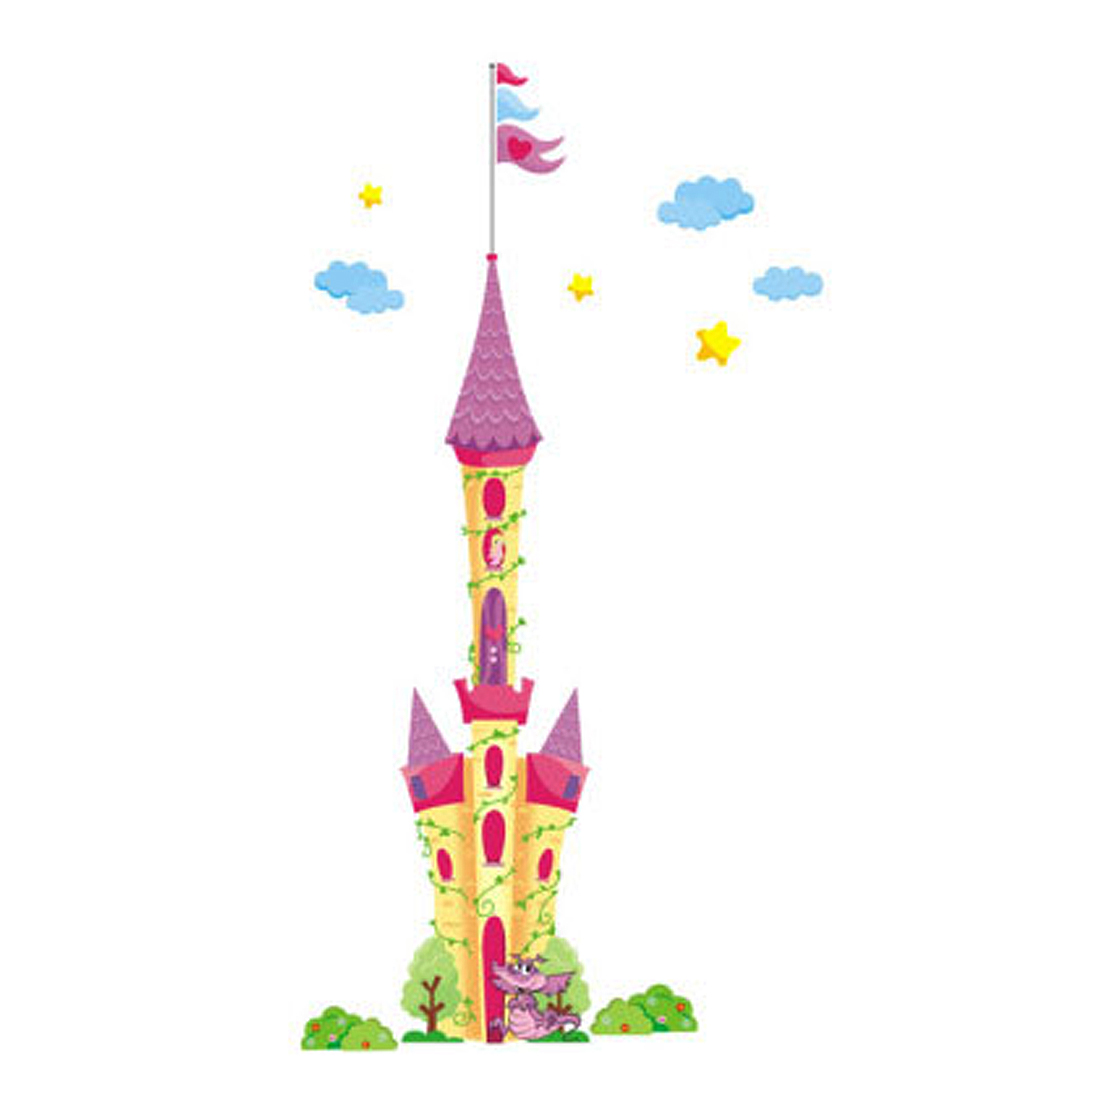 Nursery School Castle Pattern Removable Wall Sticker Mural Multicolor